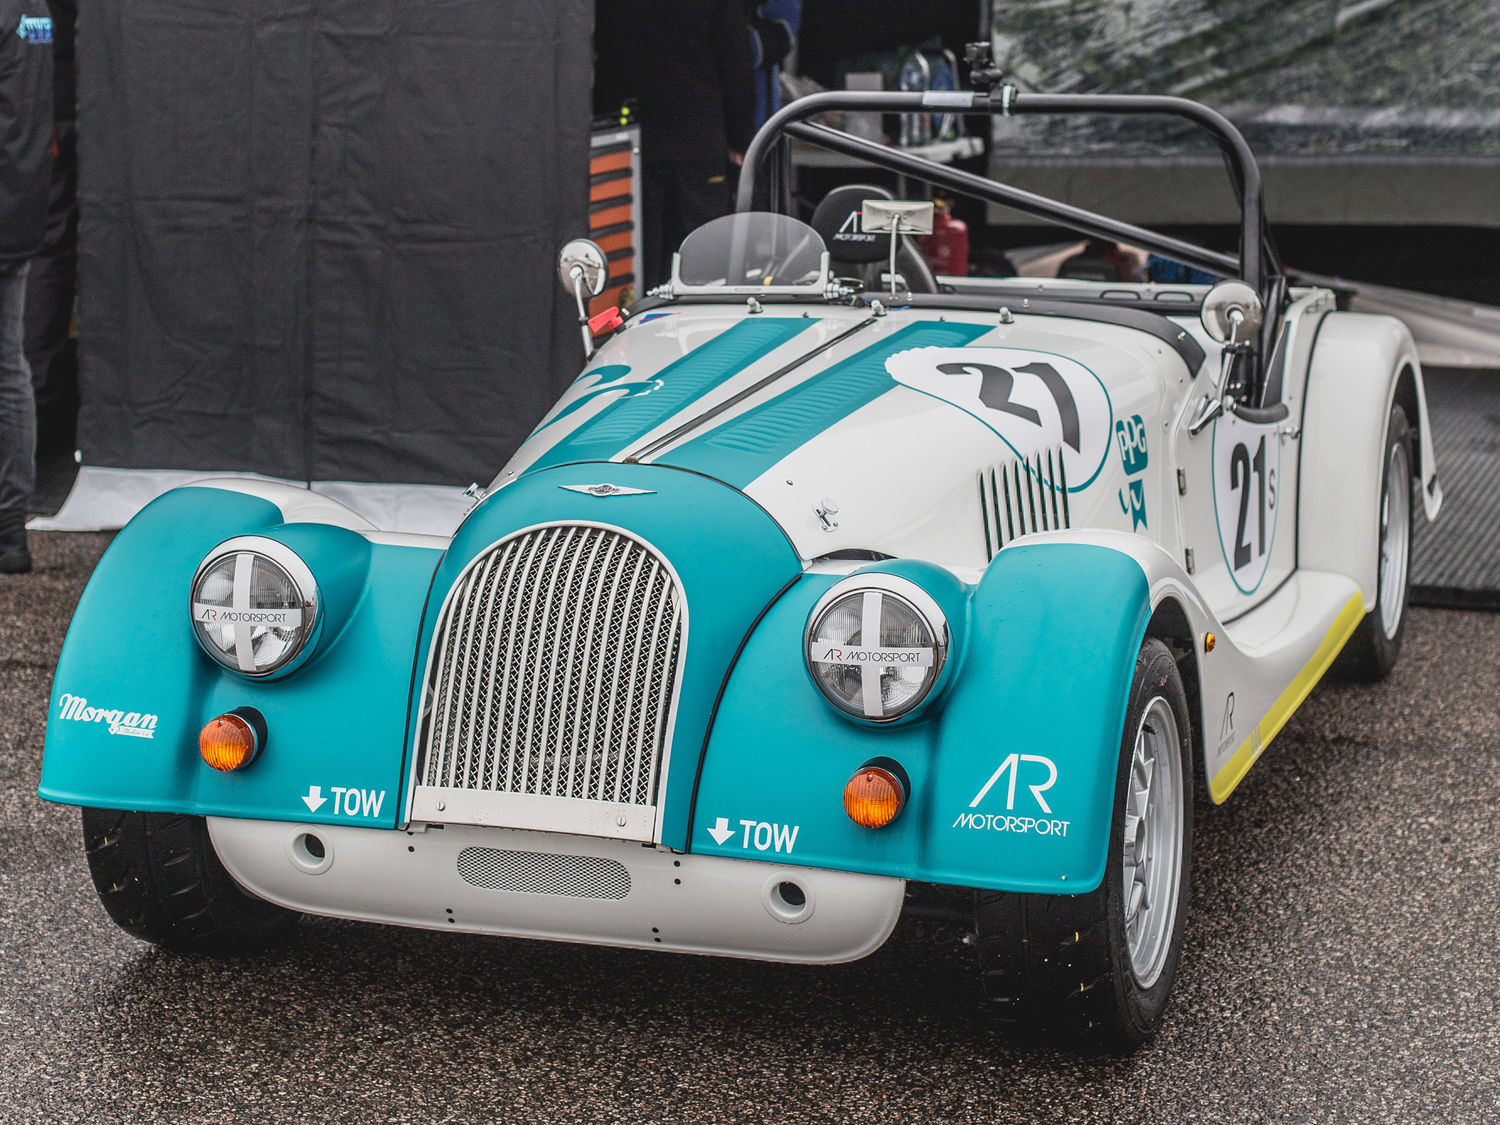 Morgan +4 Club Sport